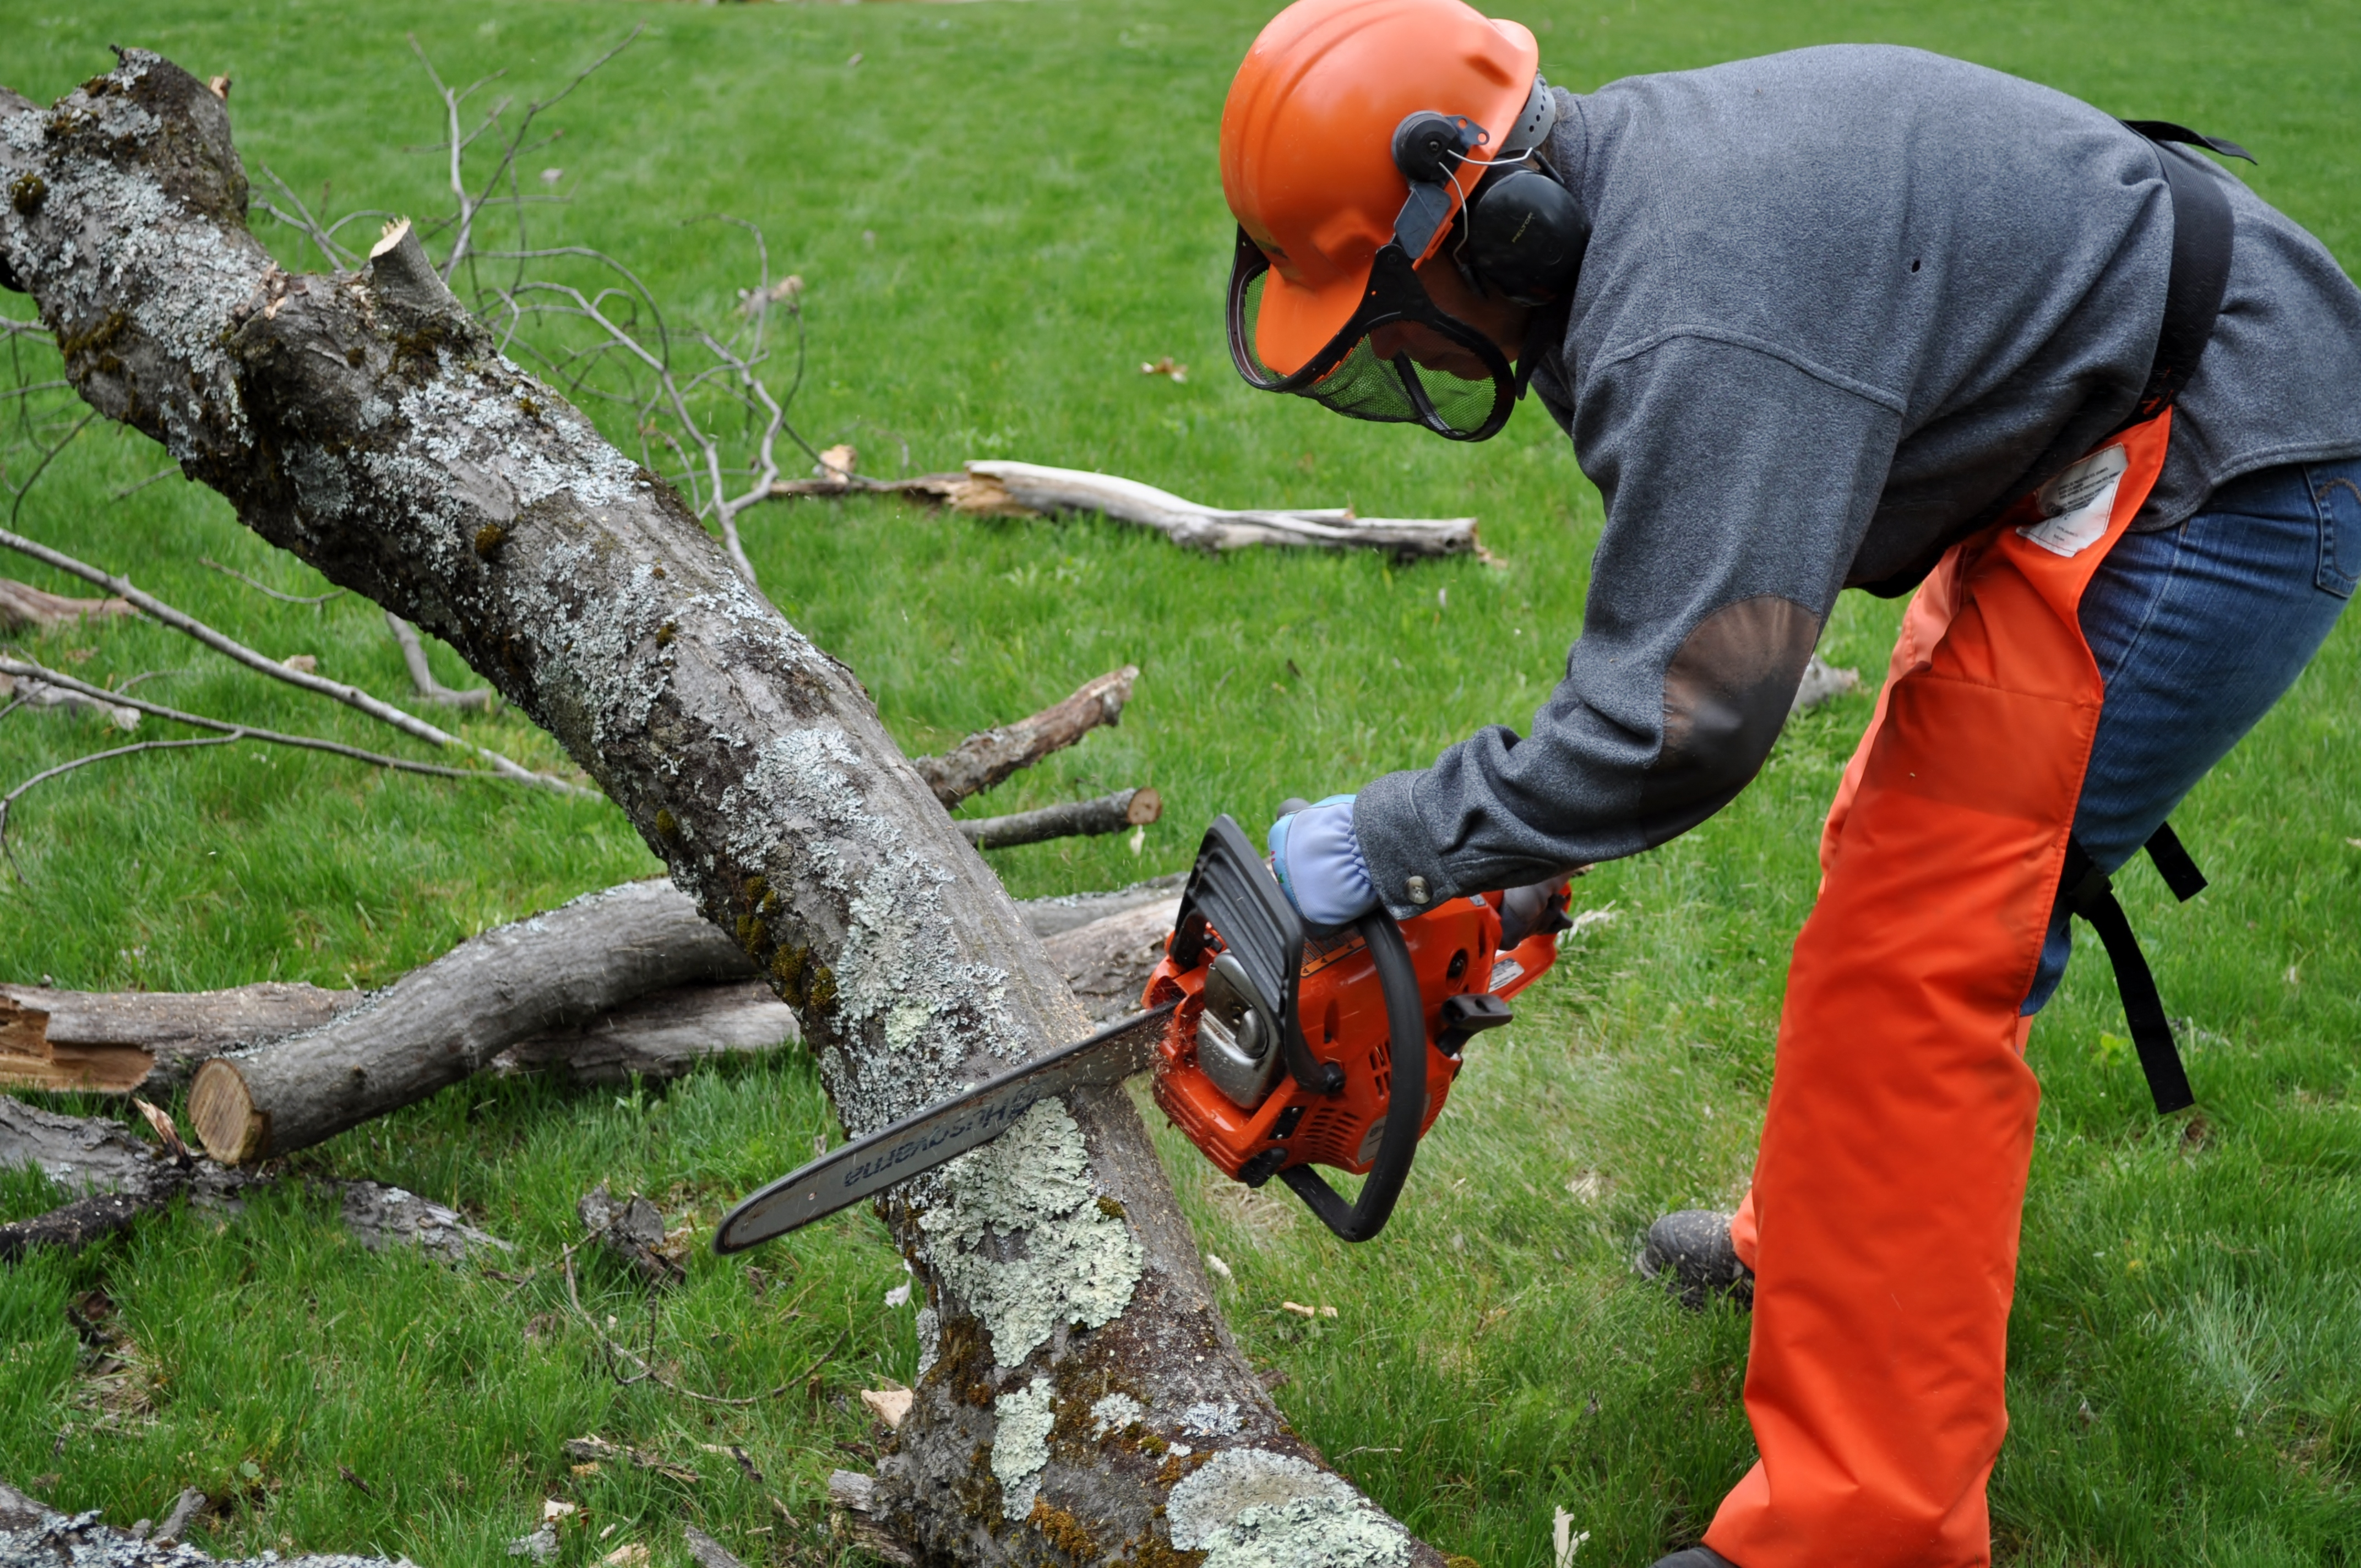 Chain Saw Safety and Cutting Techniques Course - Events